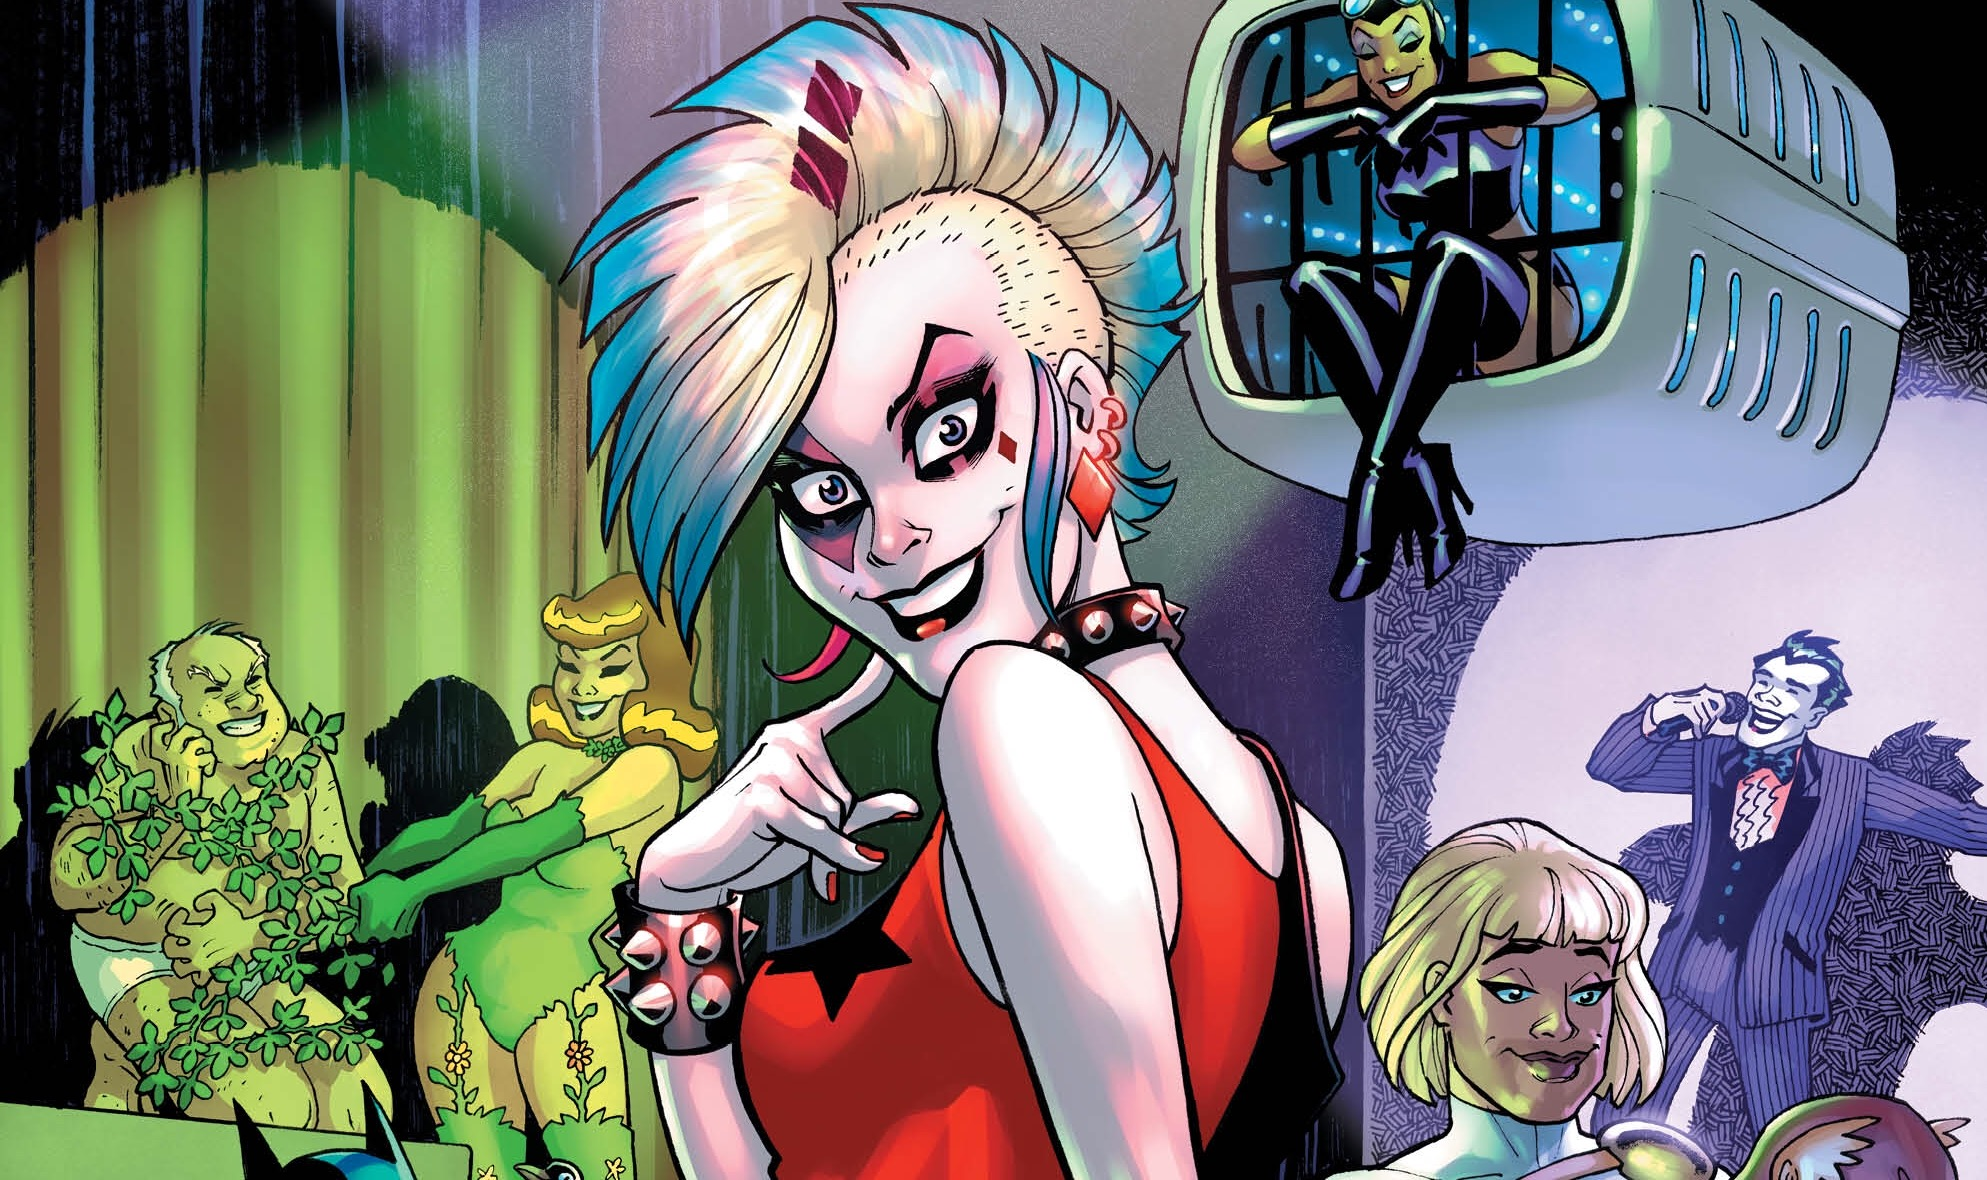 Harle--err, GG Harlin's days moonlighting as a punk rock frontwoman come to a close as the 'Eat to this Beat' story arc wraps up in Harley Quinn #7. Last issue ended with Harley finding herself in some kind of a superhero/super villain fetish club; seems right up her alley, honestly. Is it good?